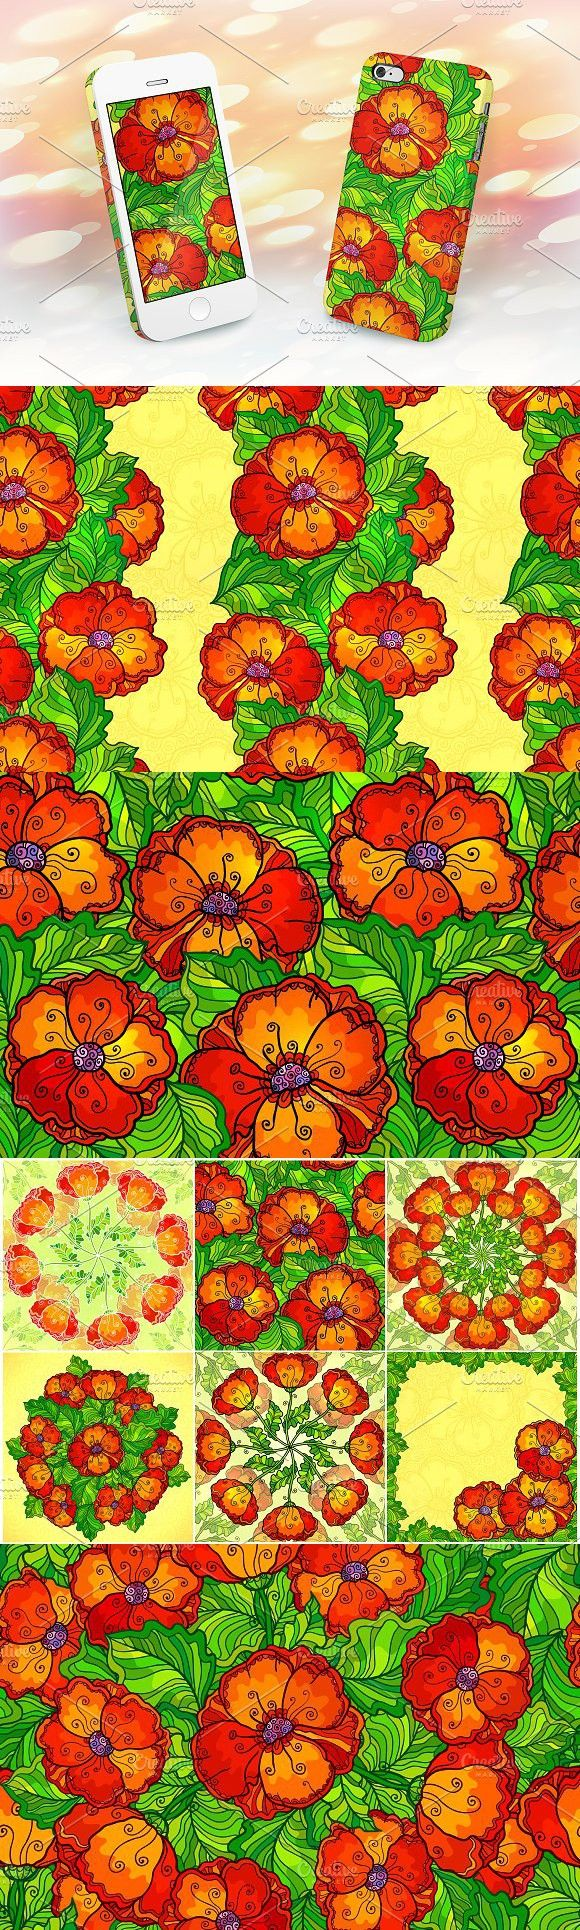 8 red poppy flowers backgrounds. Patterns. $8.00